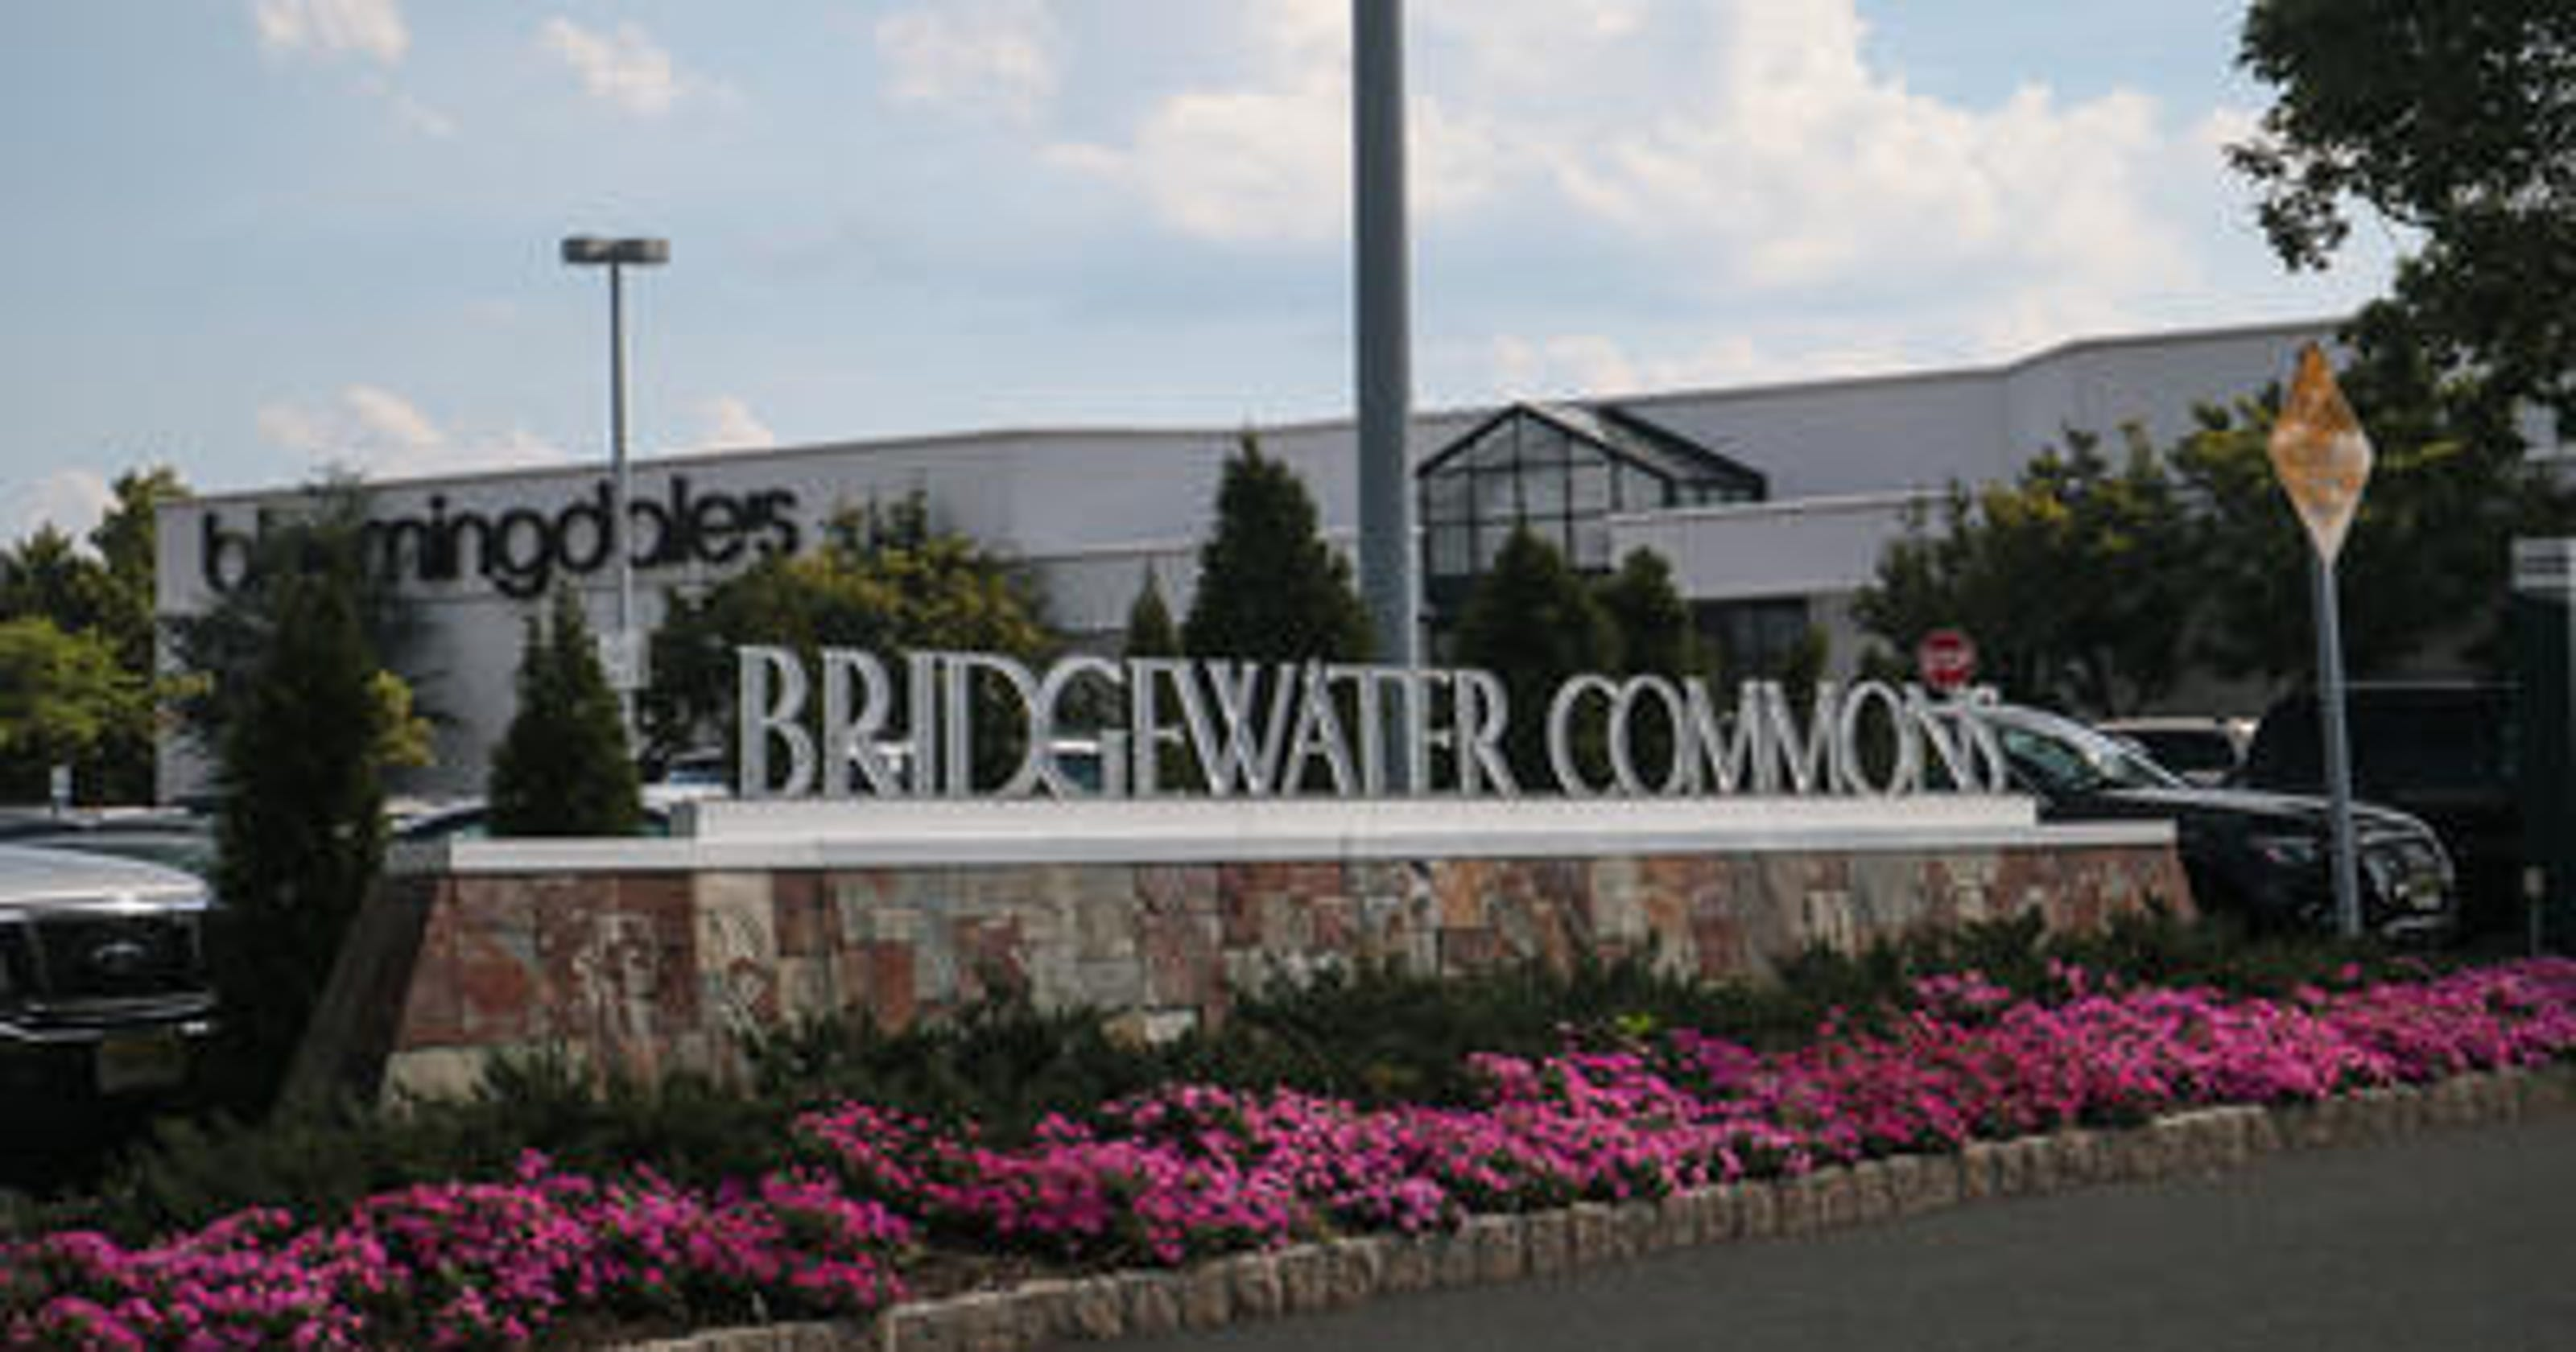 Bridgewater Commons Mall Video Being Checked After Report Of Shots Fired